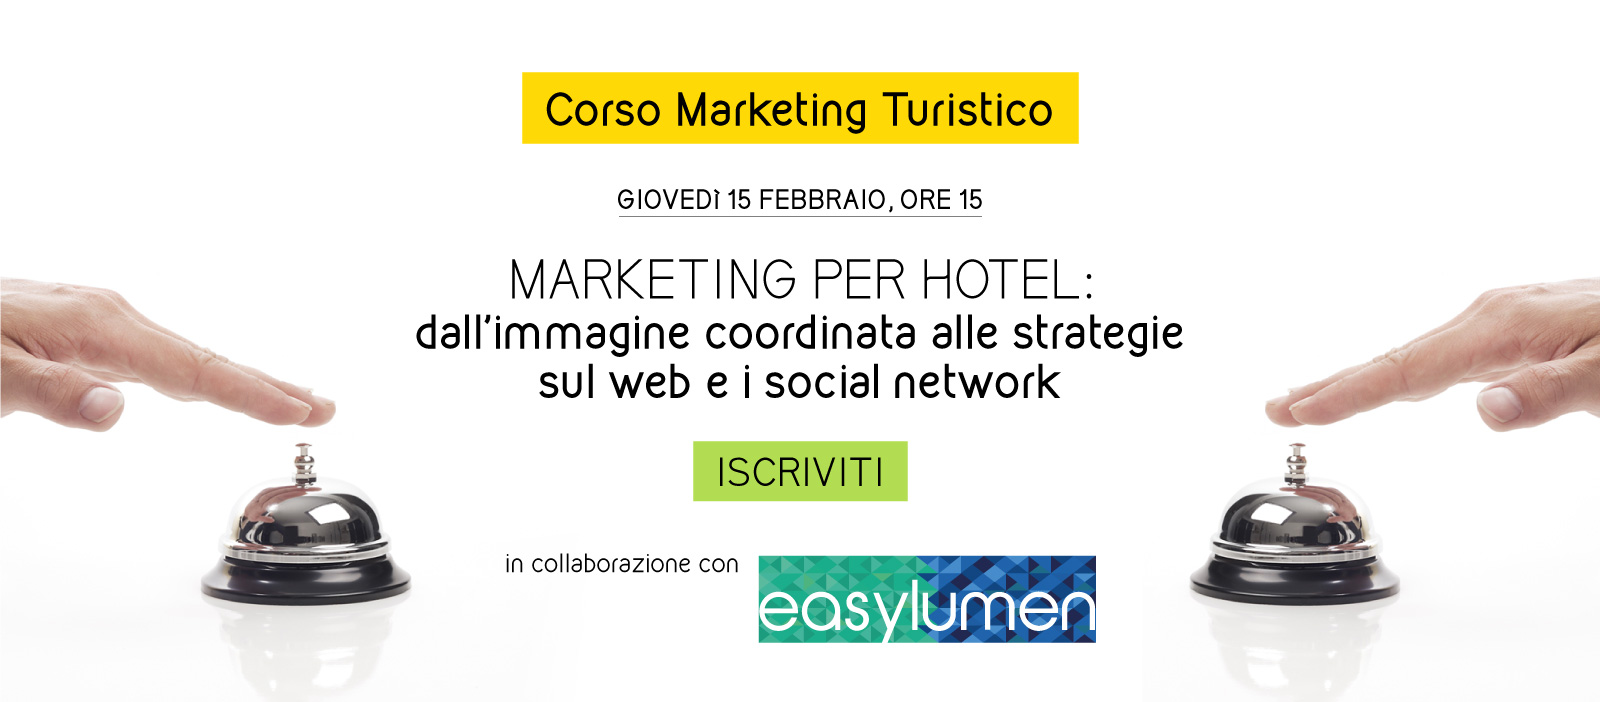 corso marketing turistico per hotel